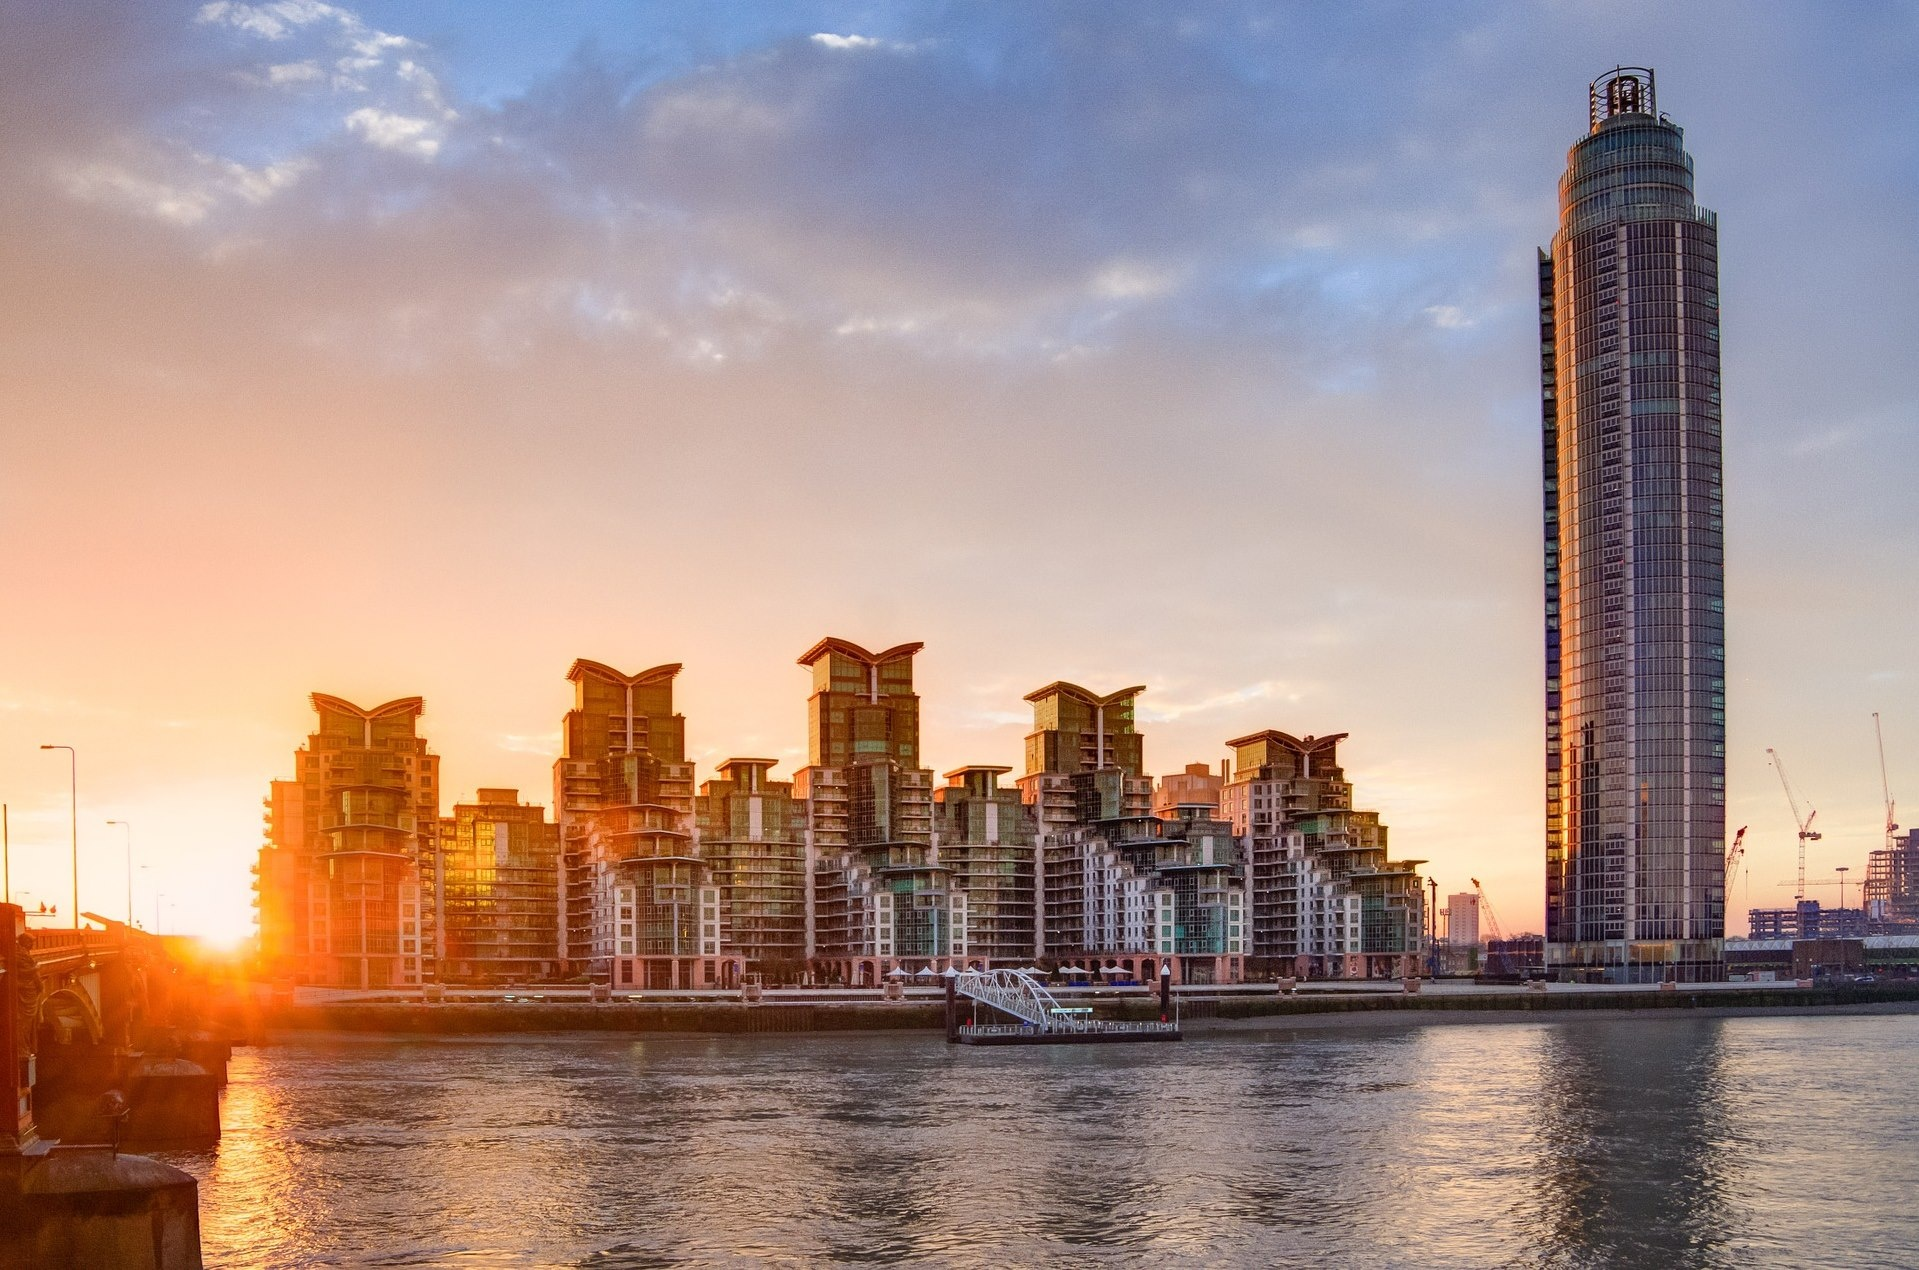 Foreigners eyeing UK properties – Demand surges since Brexit